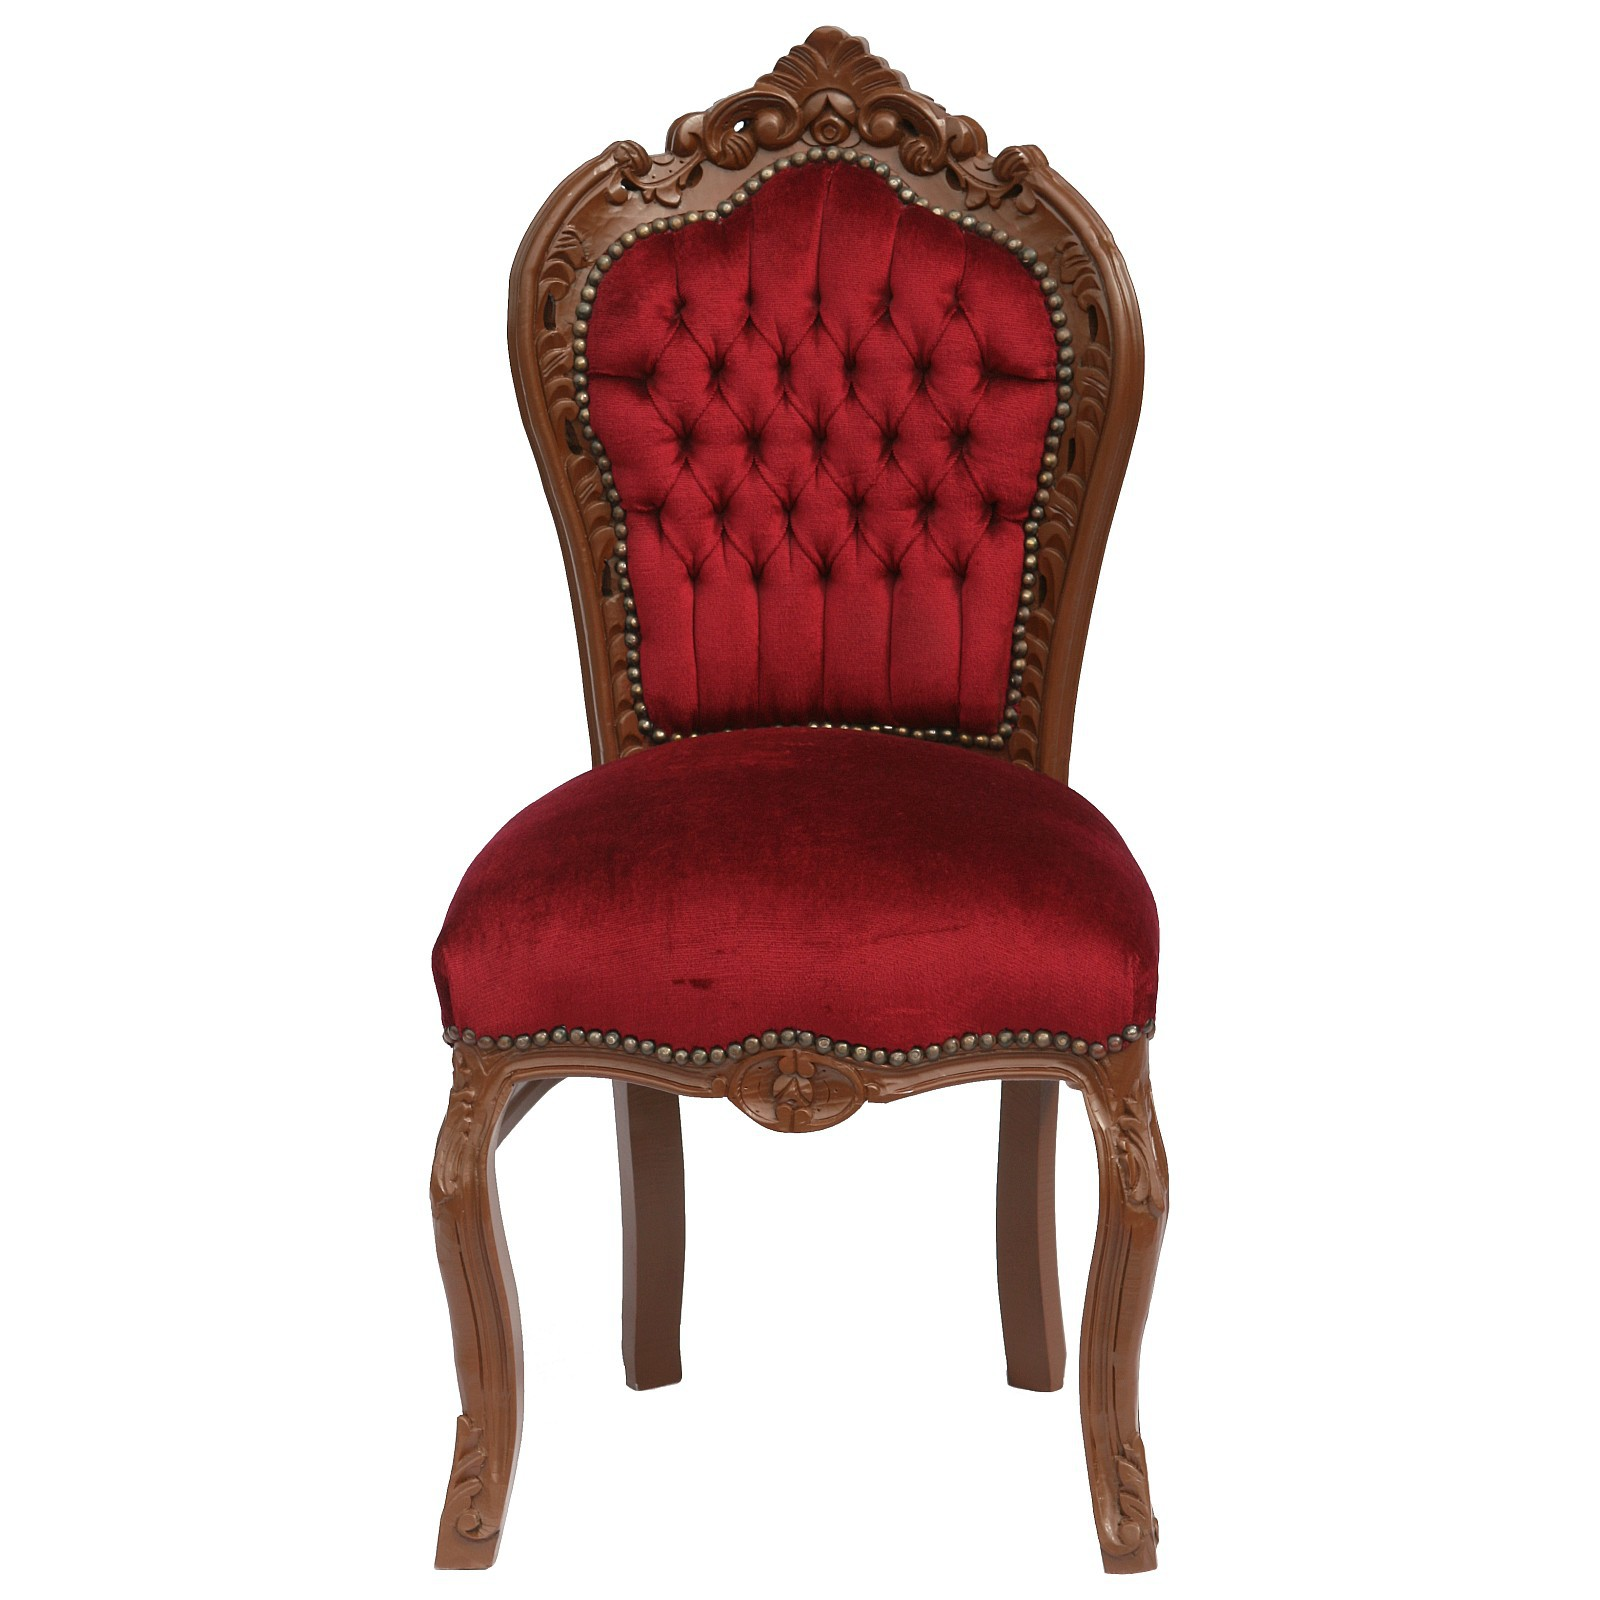 Classy Red Velvet Baroque Dining Room Chair Real Wood